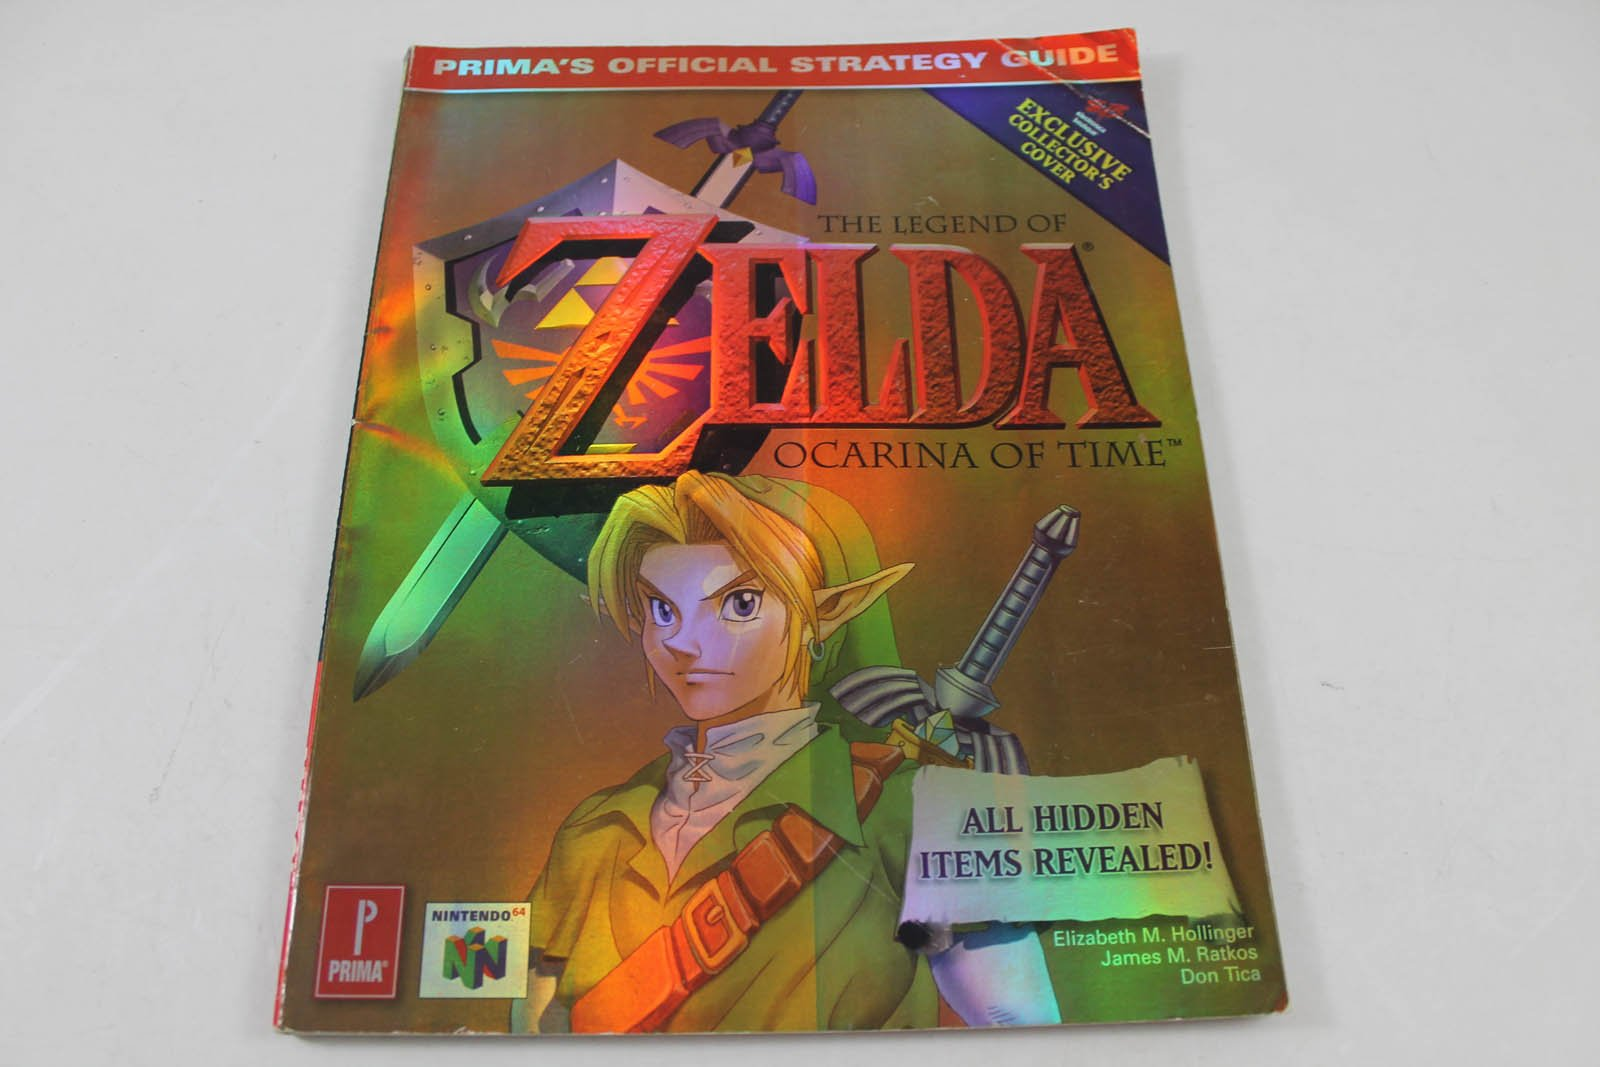 One of Prima's most popular print strategy guides. Image credit via Lukie Games.